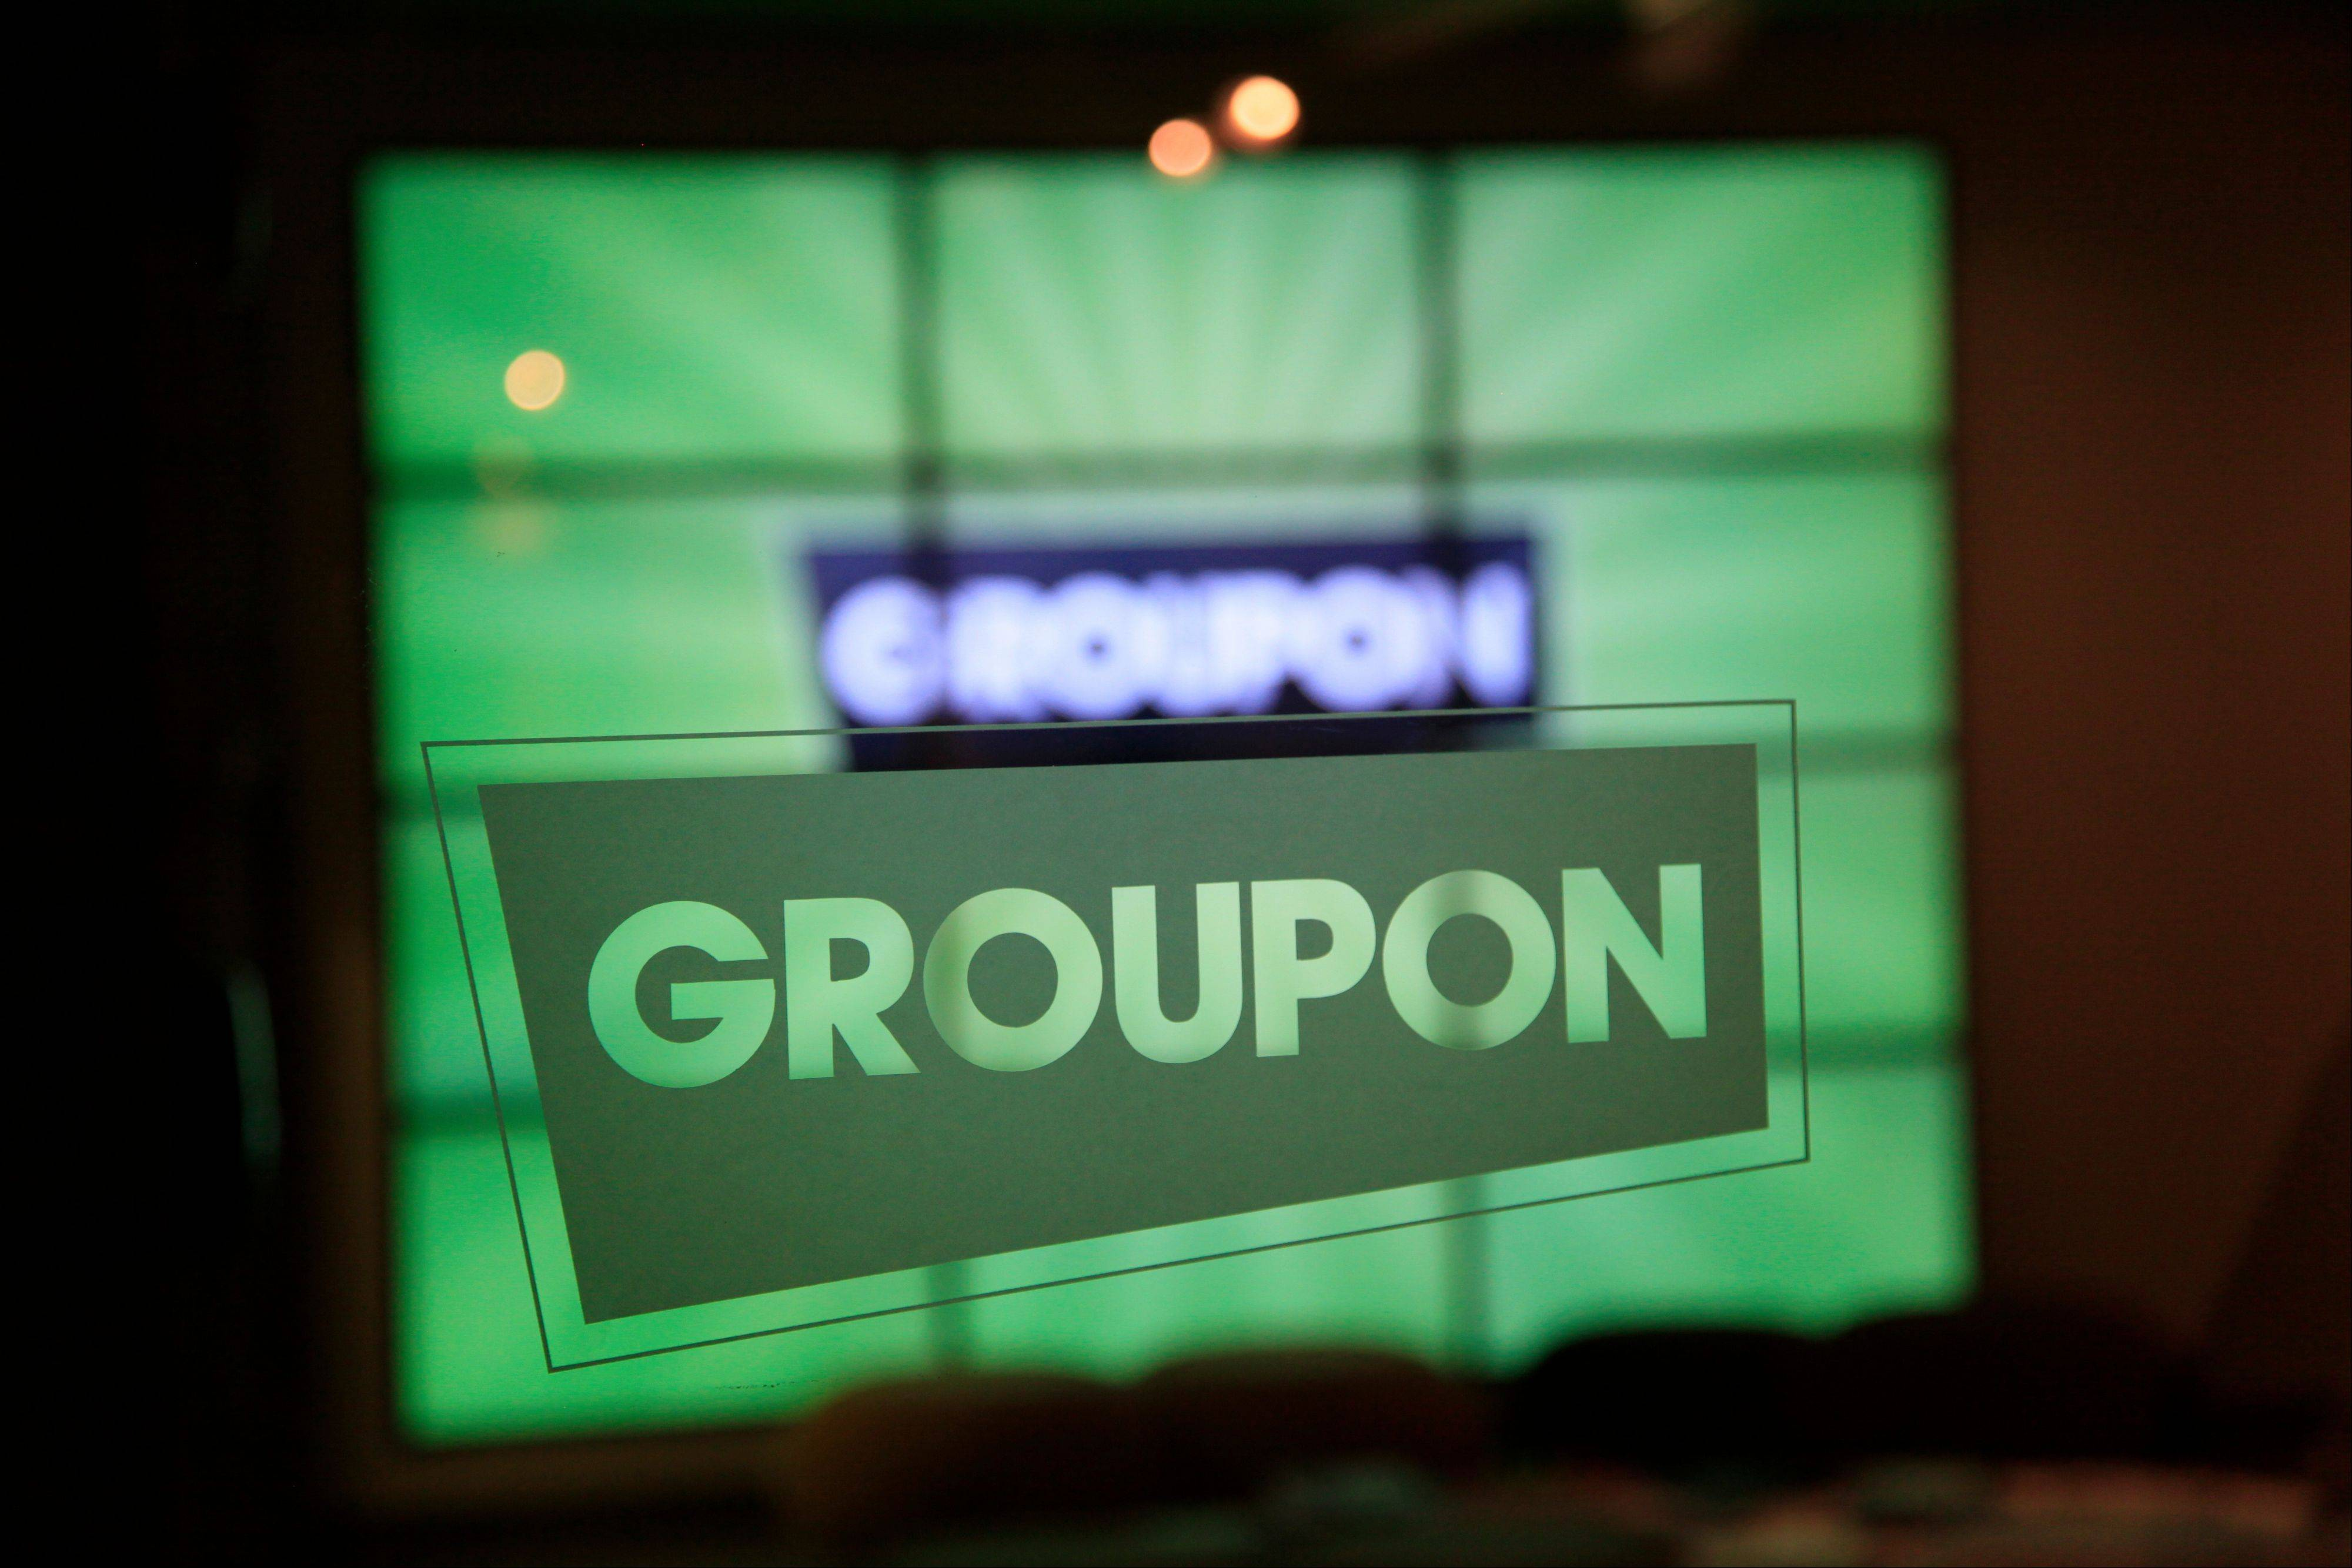 Groupon stock caps off a week of lows